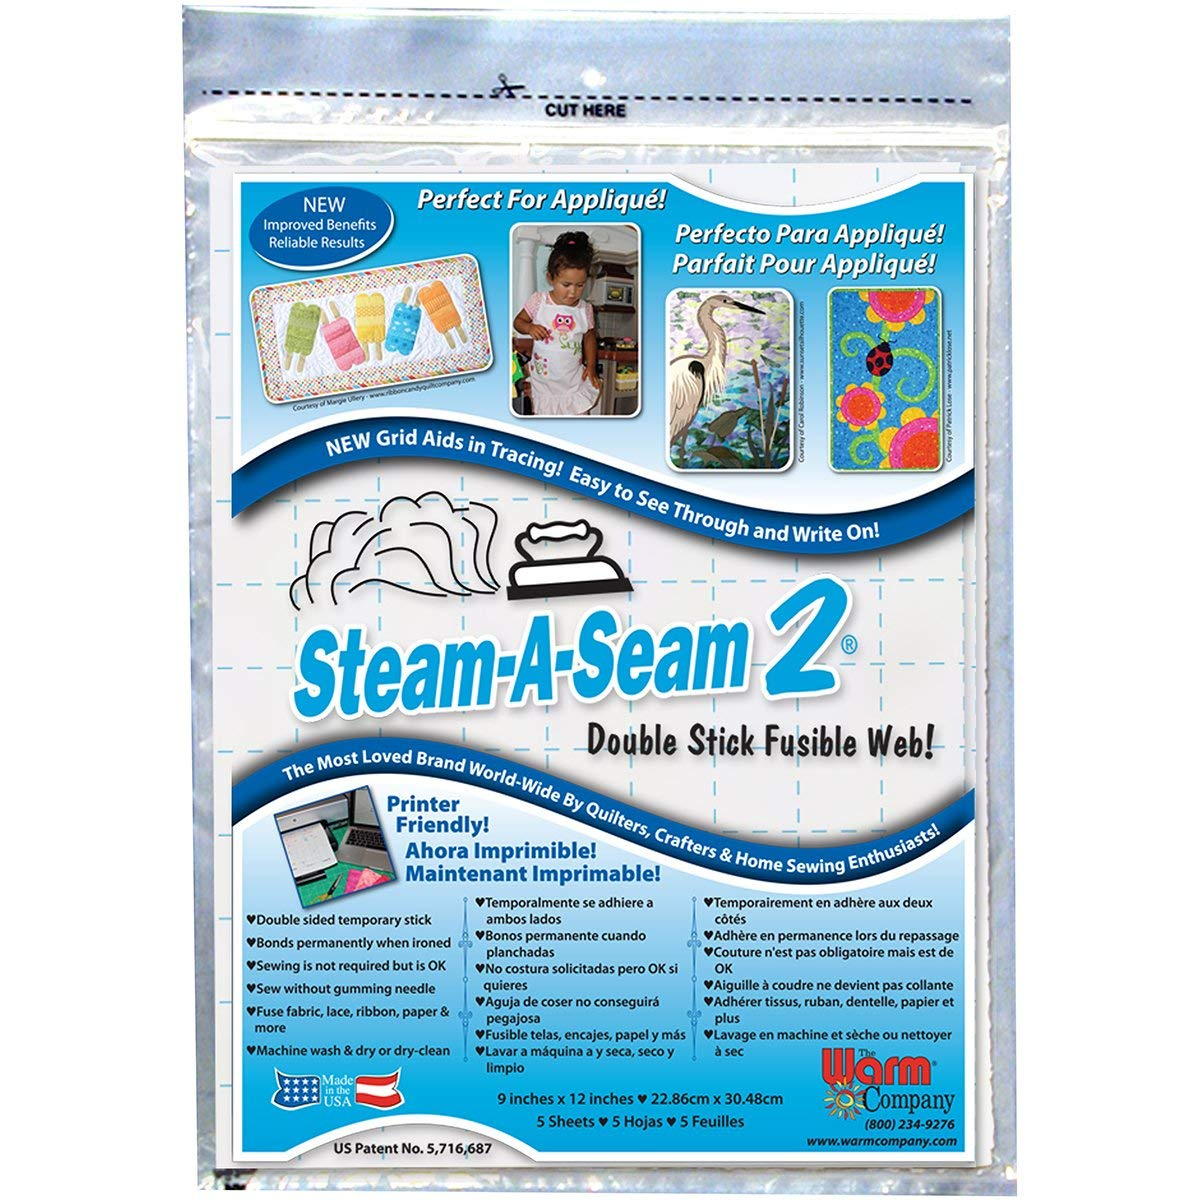 Warm Company Bulk Buy (3-Pack) Steam A Seam 2 Double Stick Fusible Web 9 inch x 12 inch Sheets 5 Pack 5517 by The Warm Company